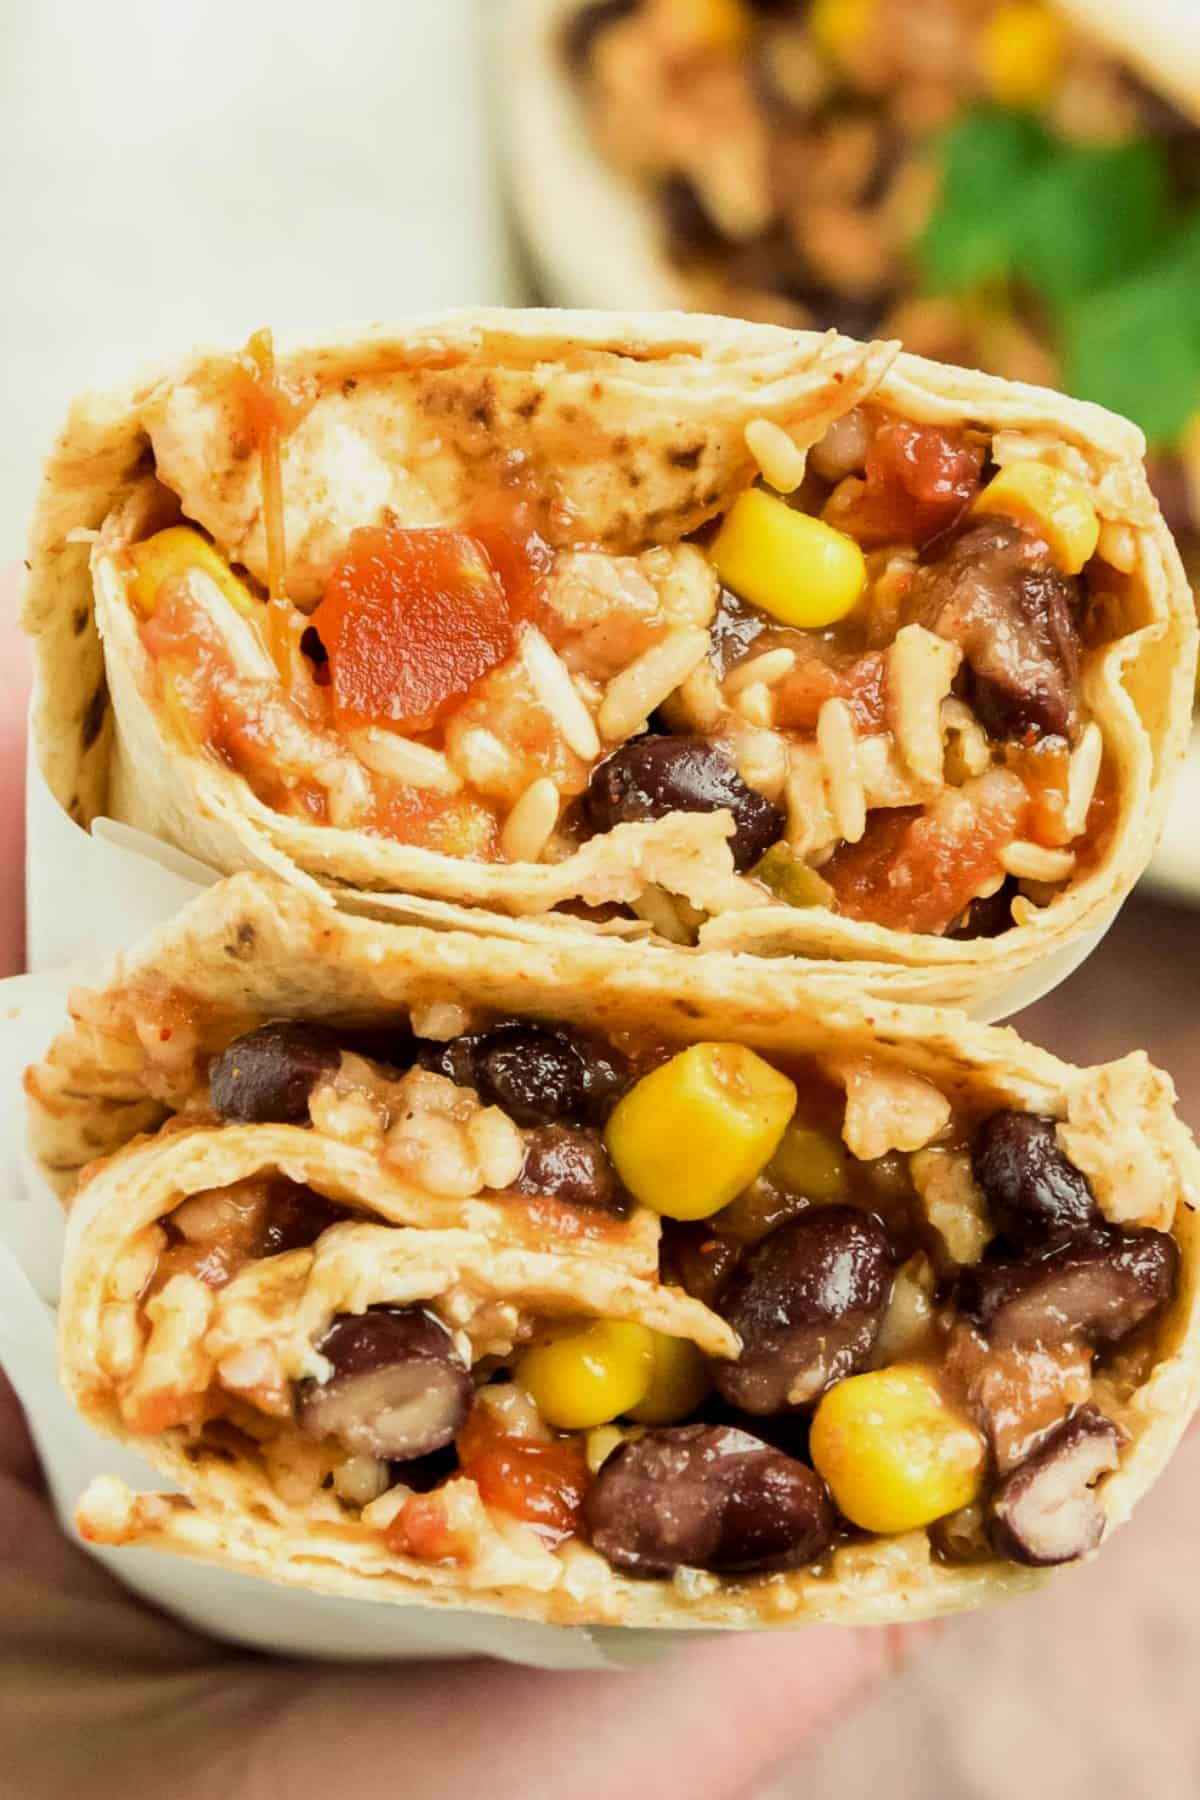 Two open vegan black bean burritos are being help up close to the camera in a hand and you can clearly see the delicious bean and rice filling.